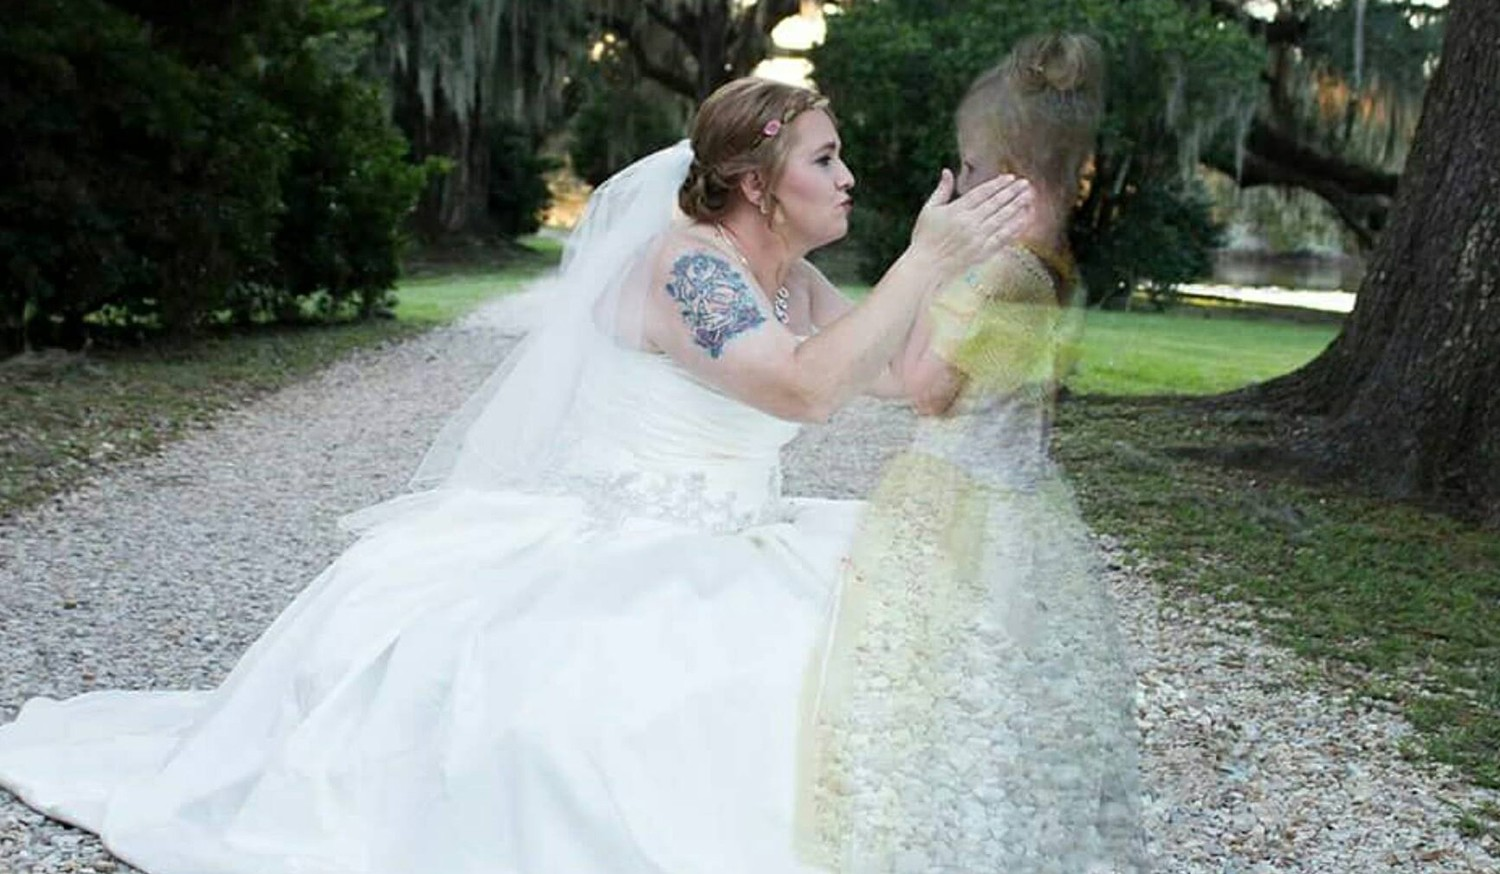 Bride holds late daughter on wedding day